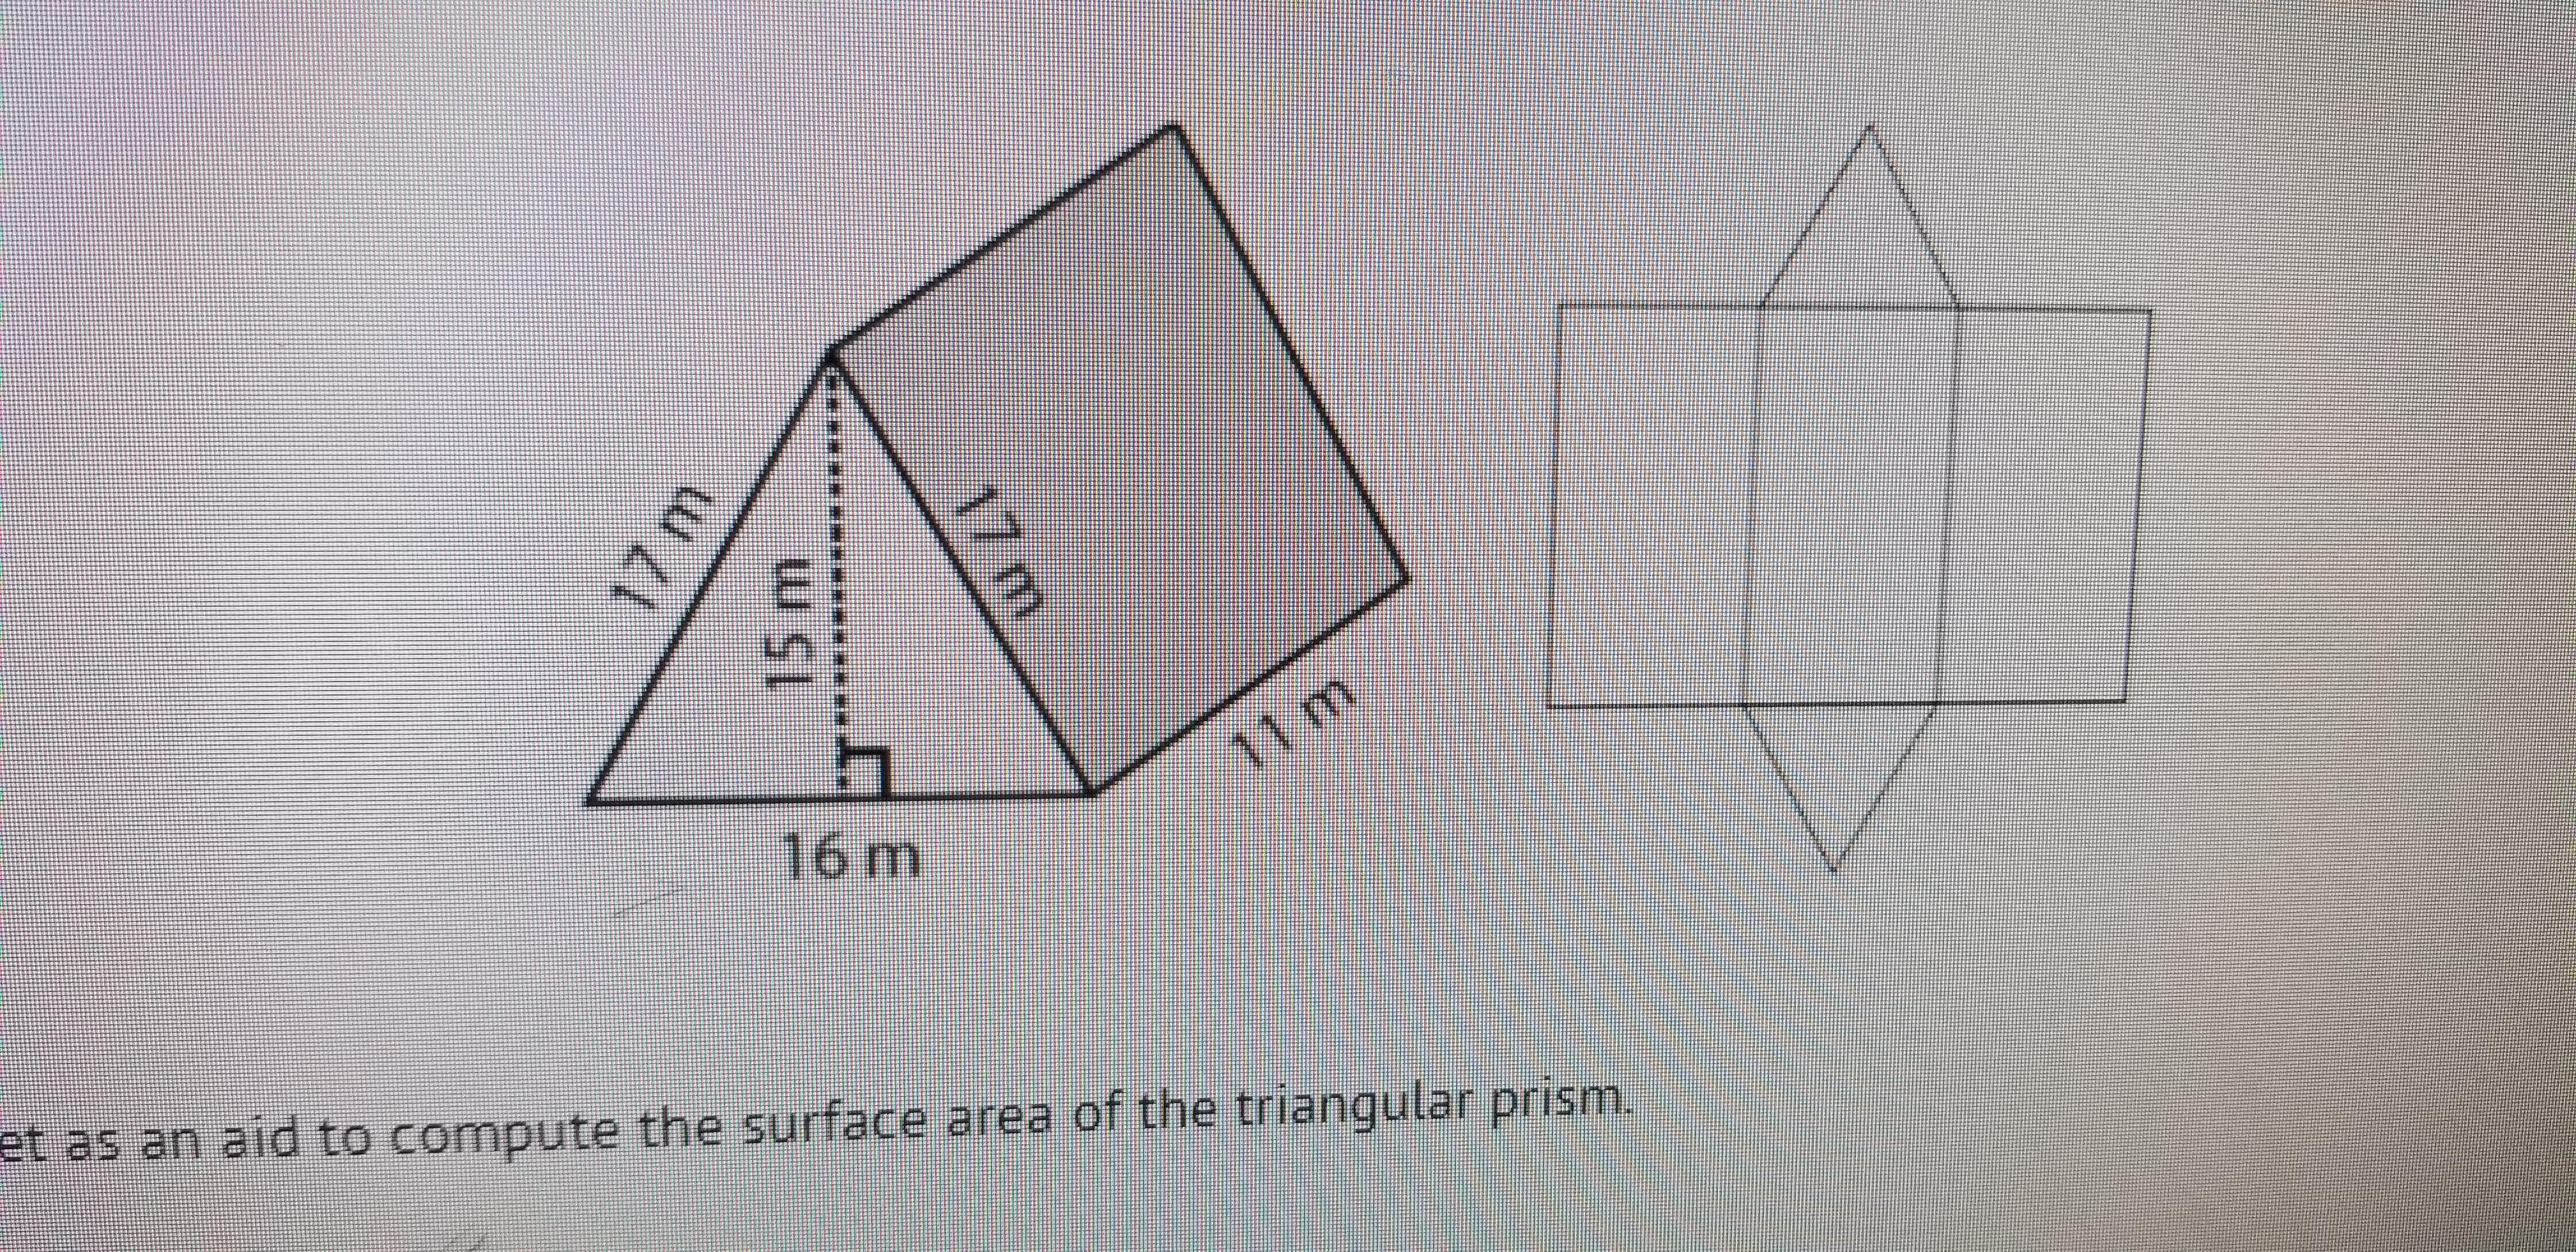 Use The Net As An Aid To Compute The Surface Area Of The